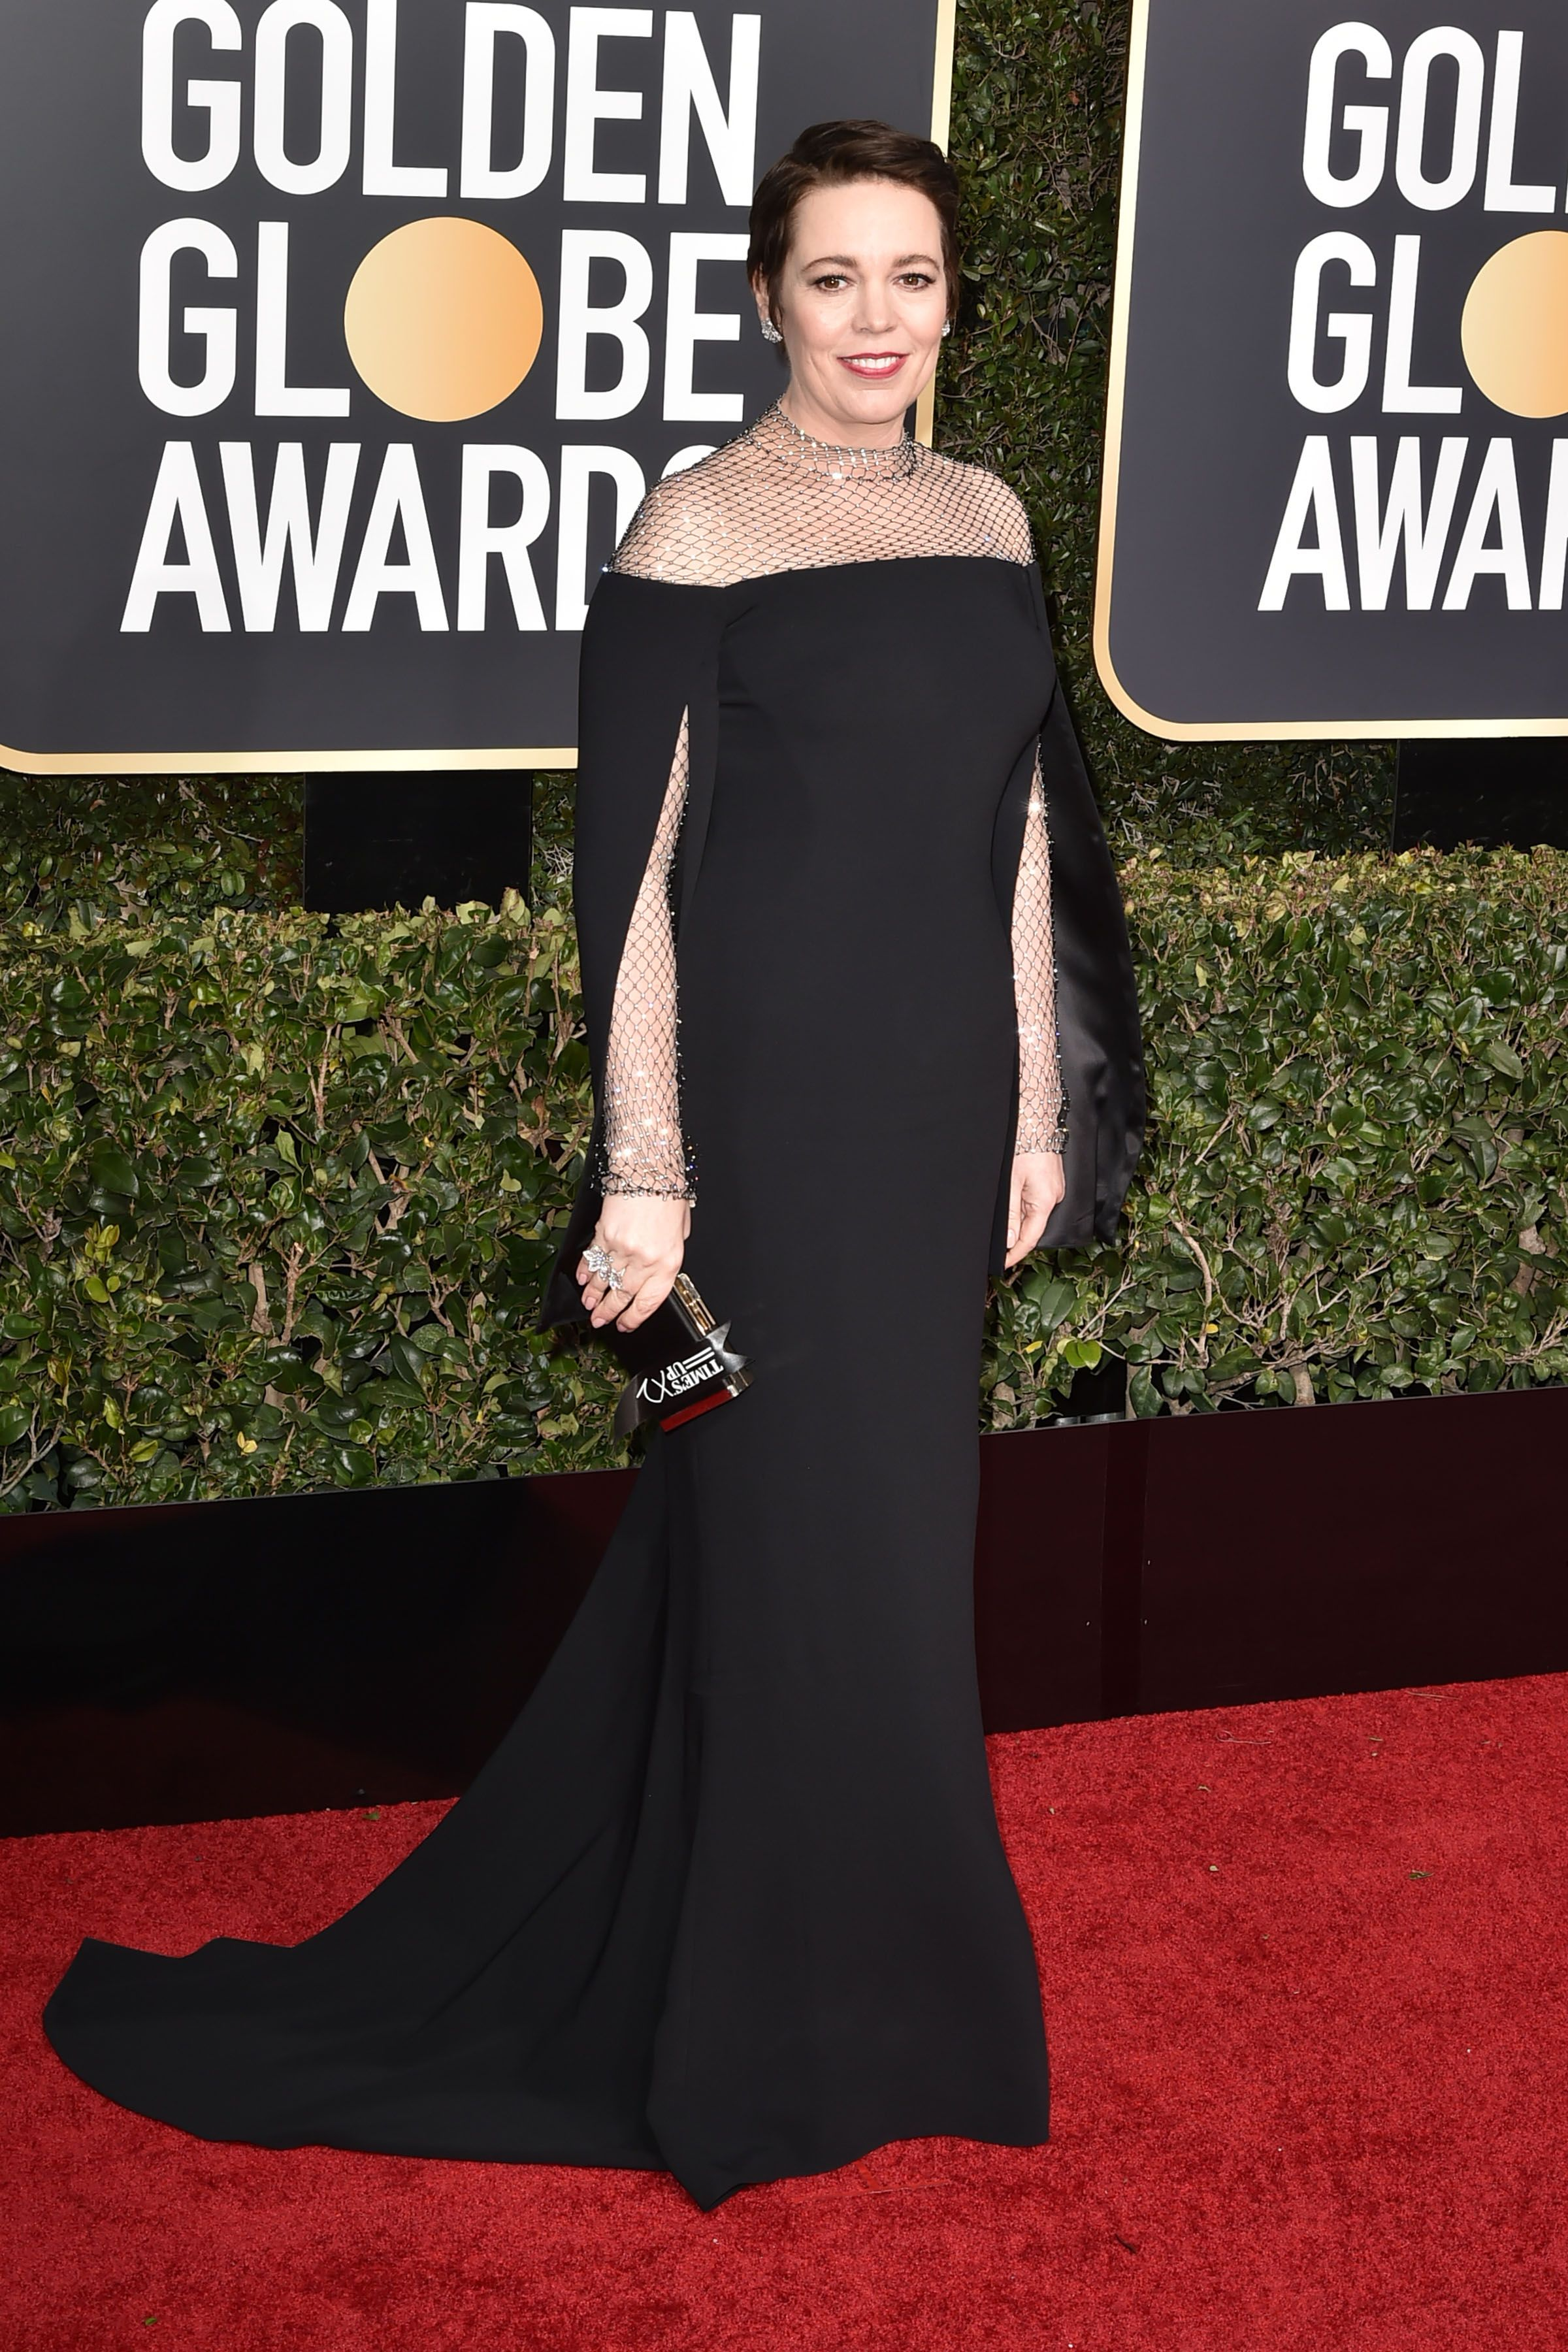 Olivia Colman arrived at the 76th Annual Golden Globe Awards wearing a stunning black gown by Stella McCartney.